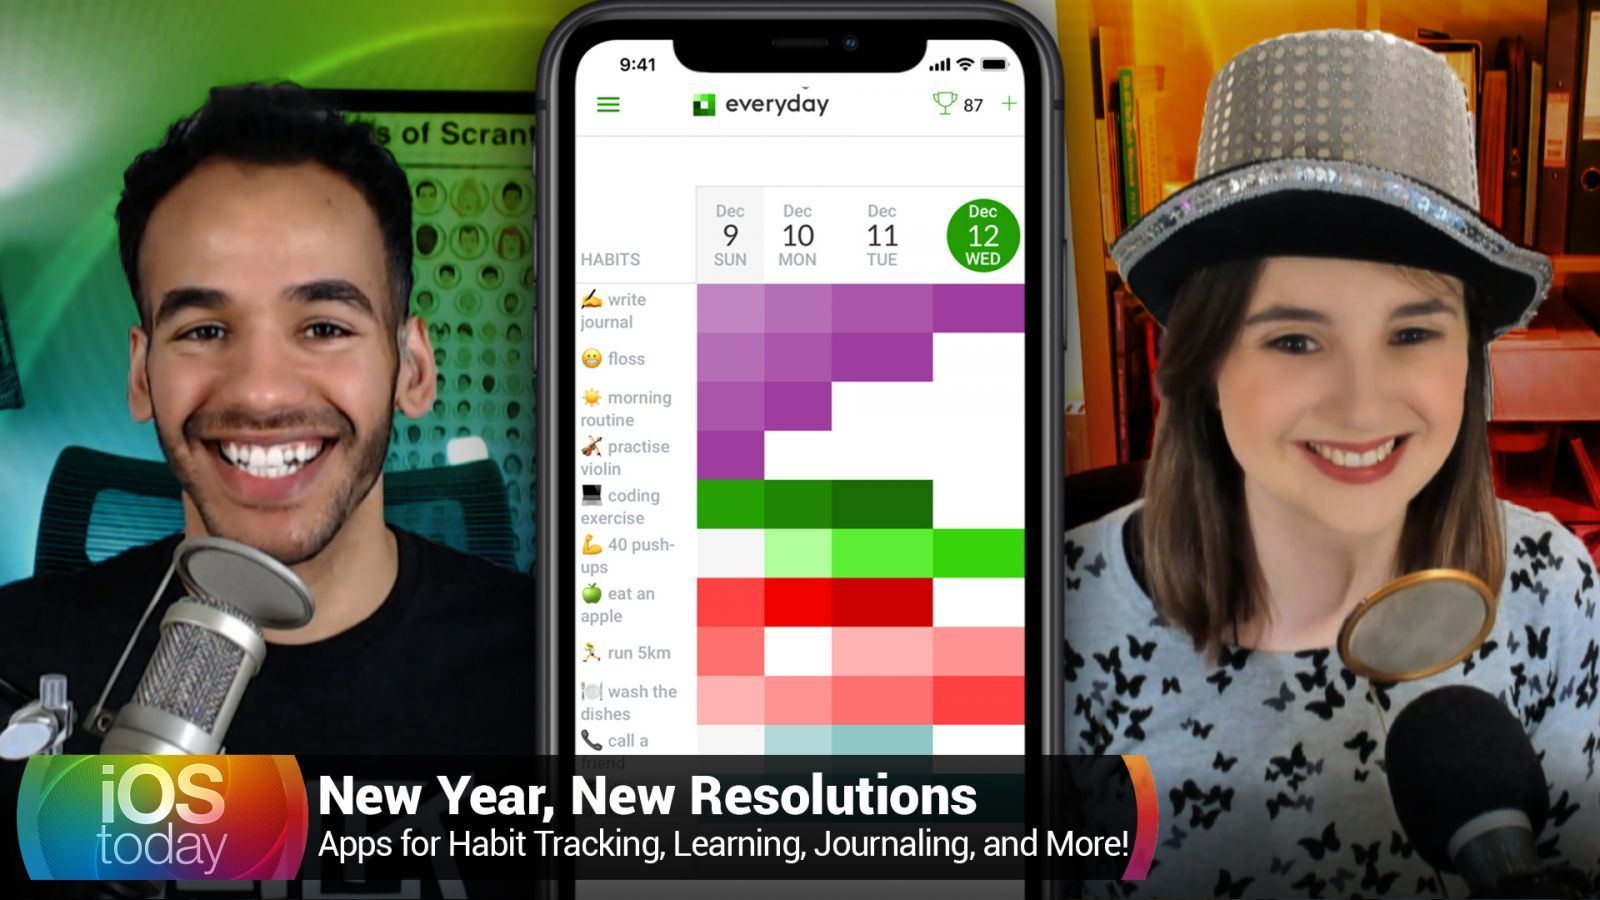 iOS 532: New Year, New Resolutions - Apps for Habit Tracking, Language Learning, Journaling, Coding, and More!